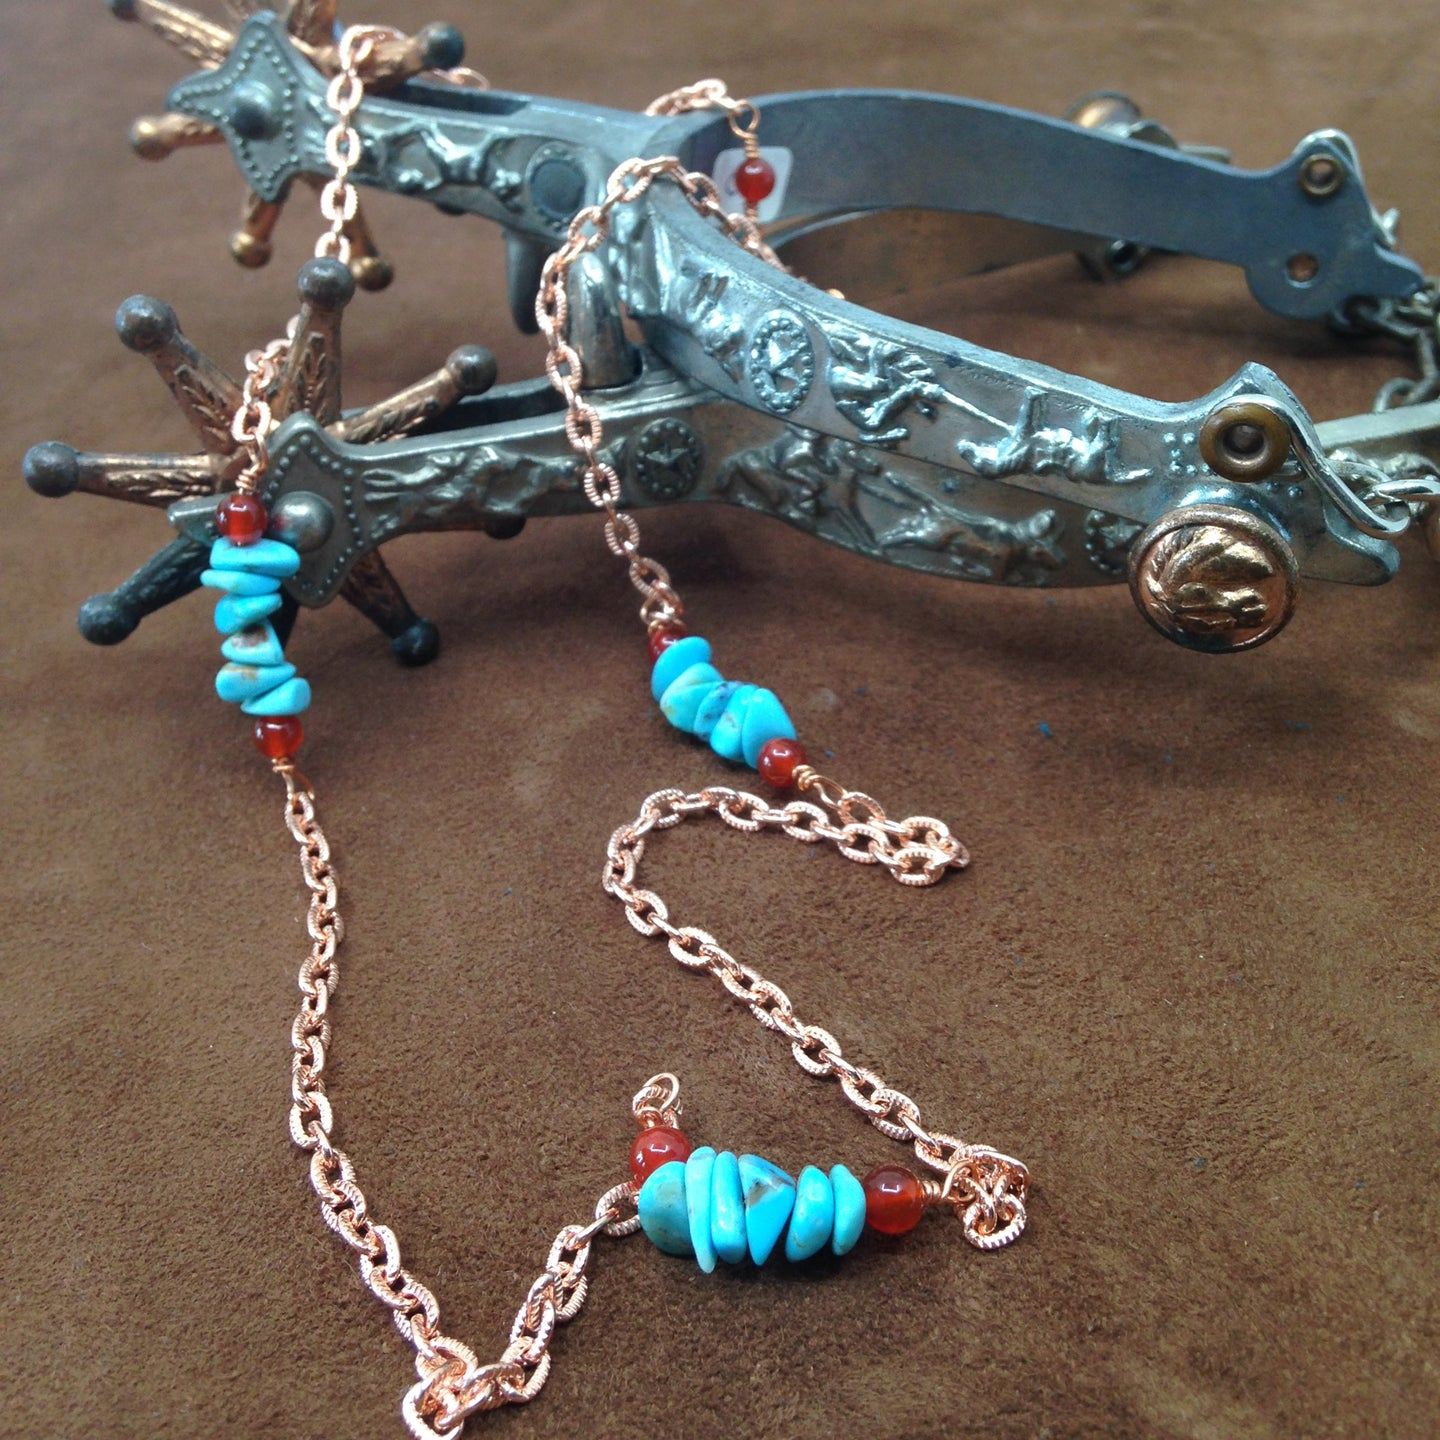 SCG008-C 24 inch copper and turquoise necklace